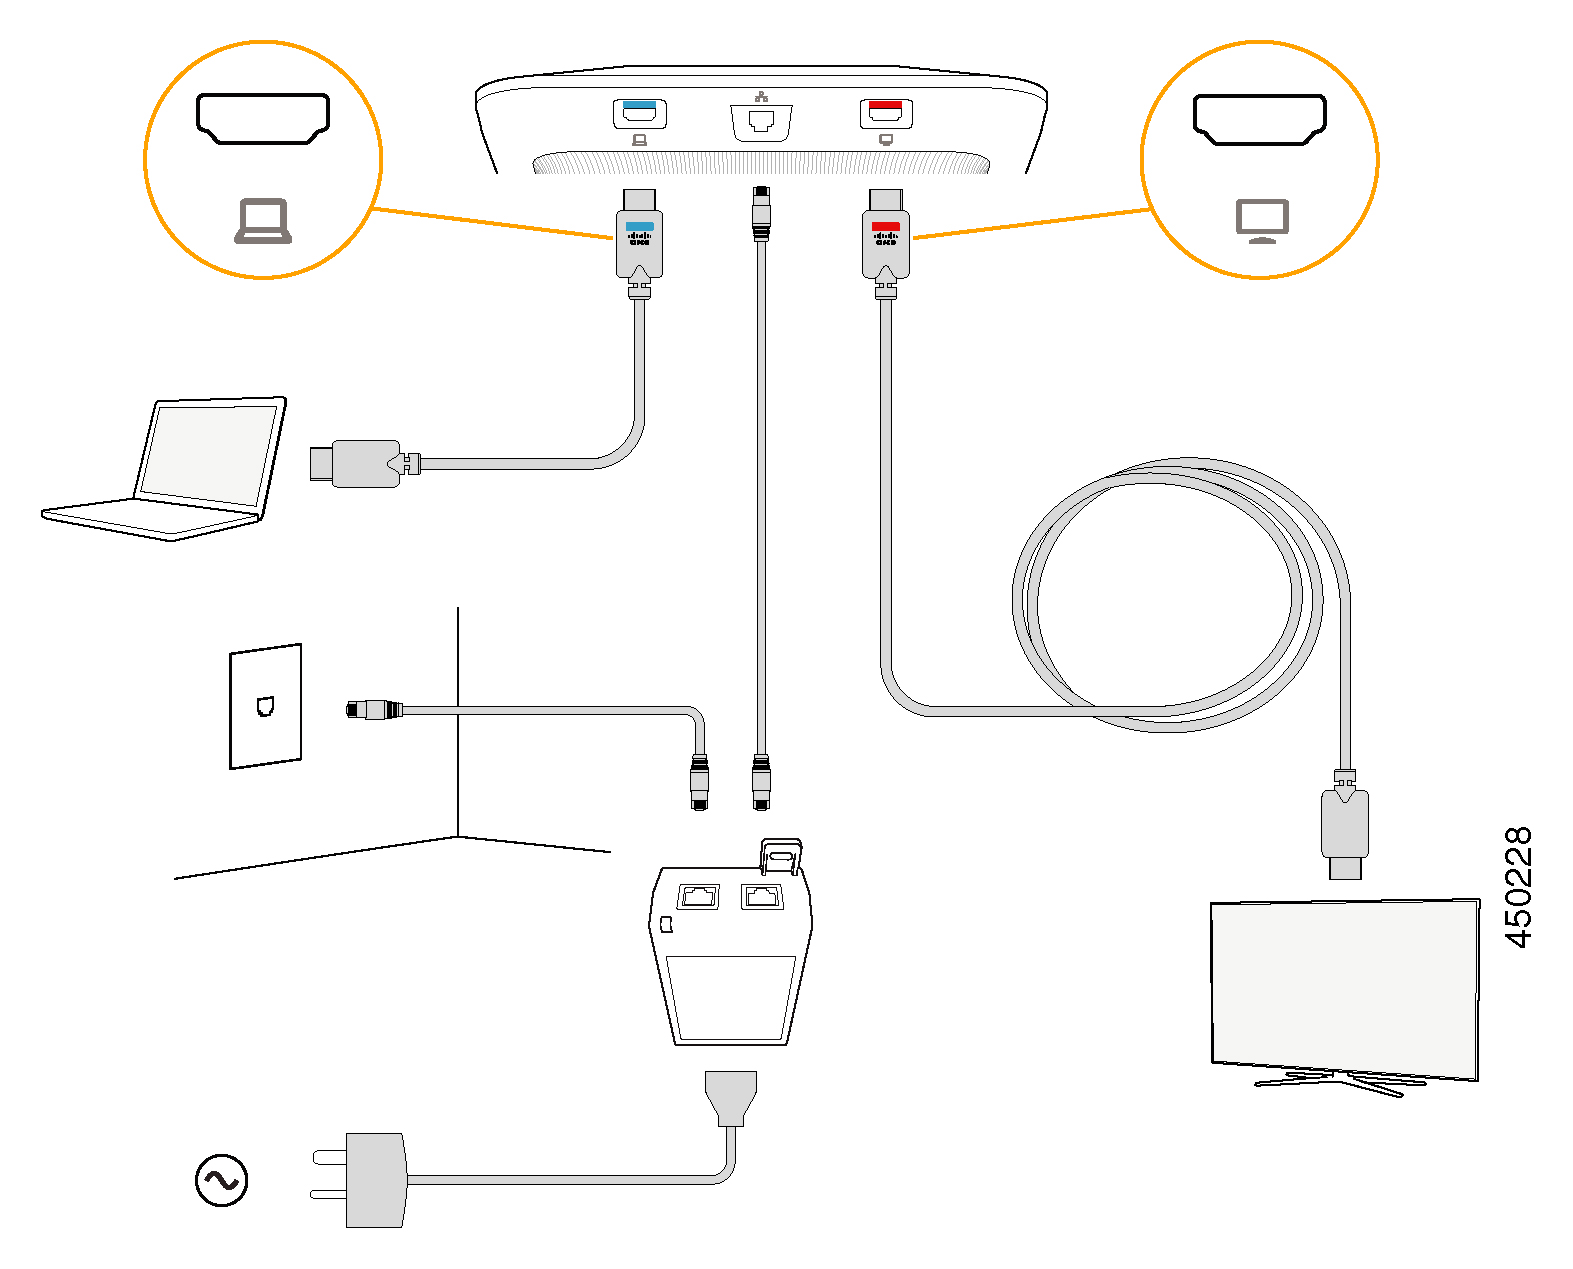 Ethernet with a Cisco Aironet Power Injector or Non-PoE configuration. The Cisco Webex Room Phone connects to the power injector.